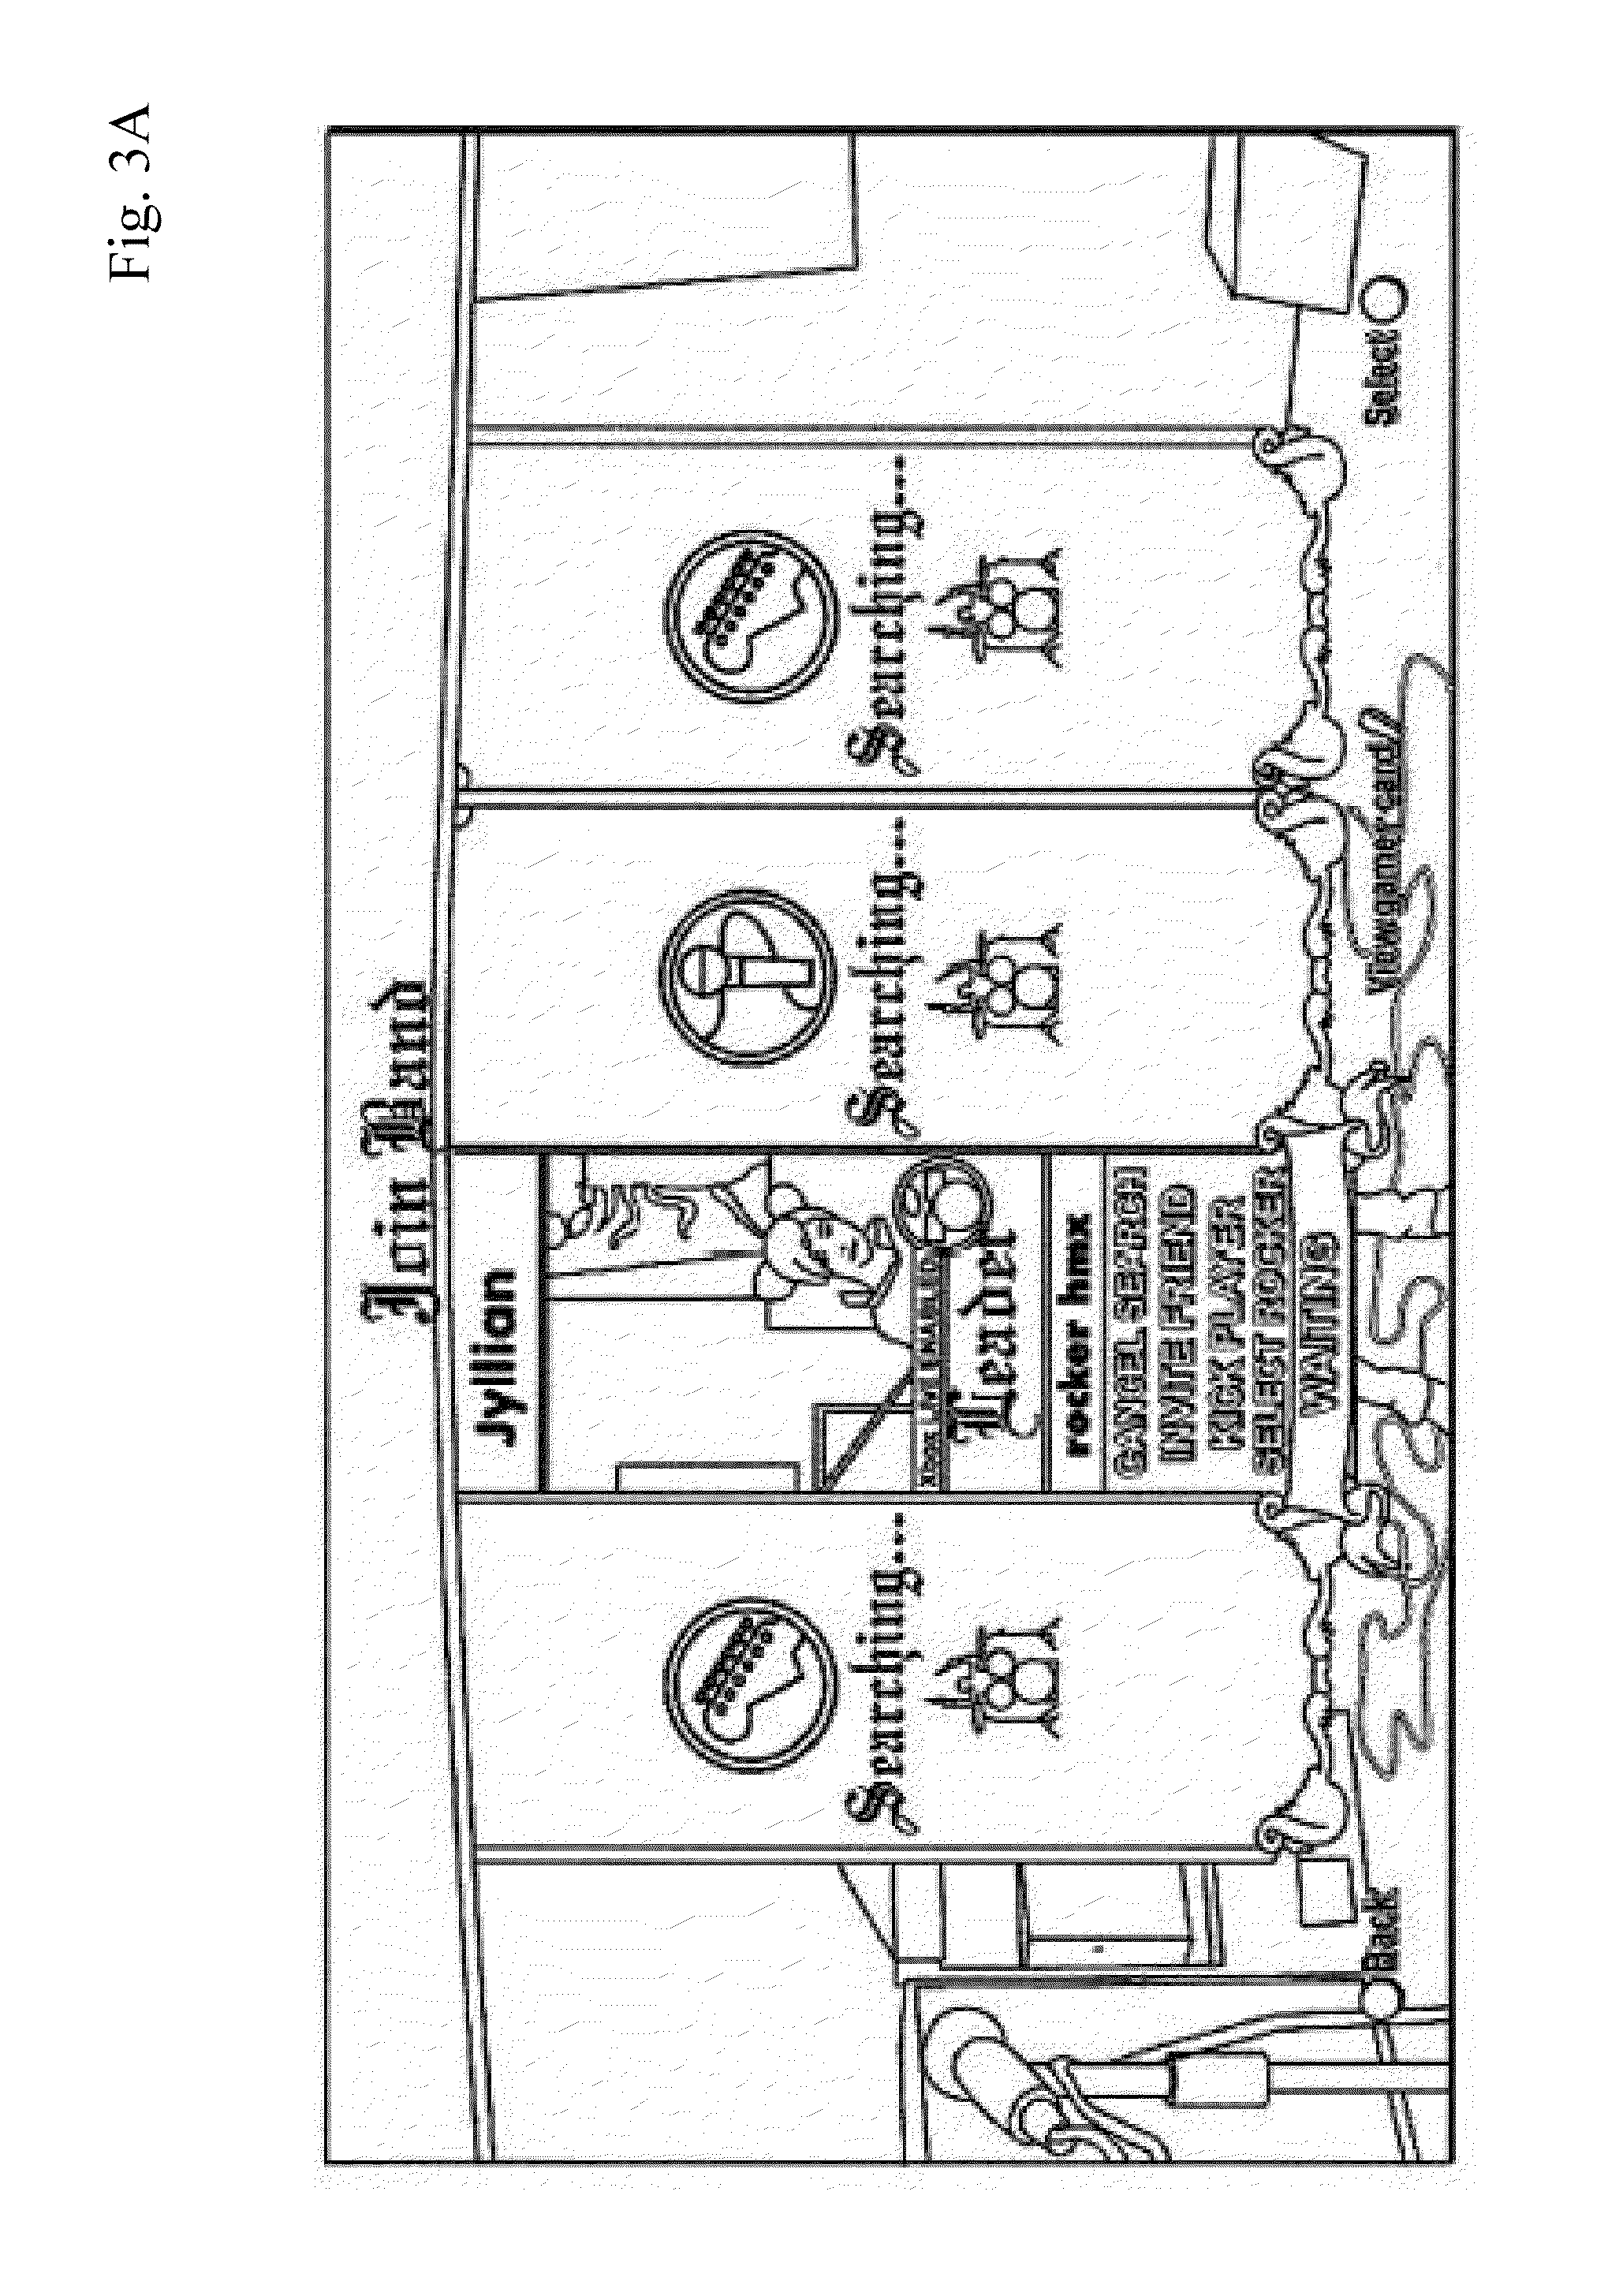 patent us8678896 systems and methods for asynchronous band Entry Level Mechanic Resume Summary patent drawing